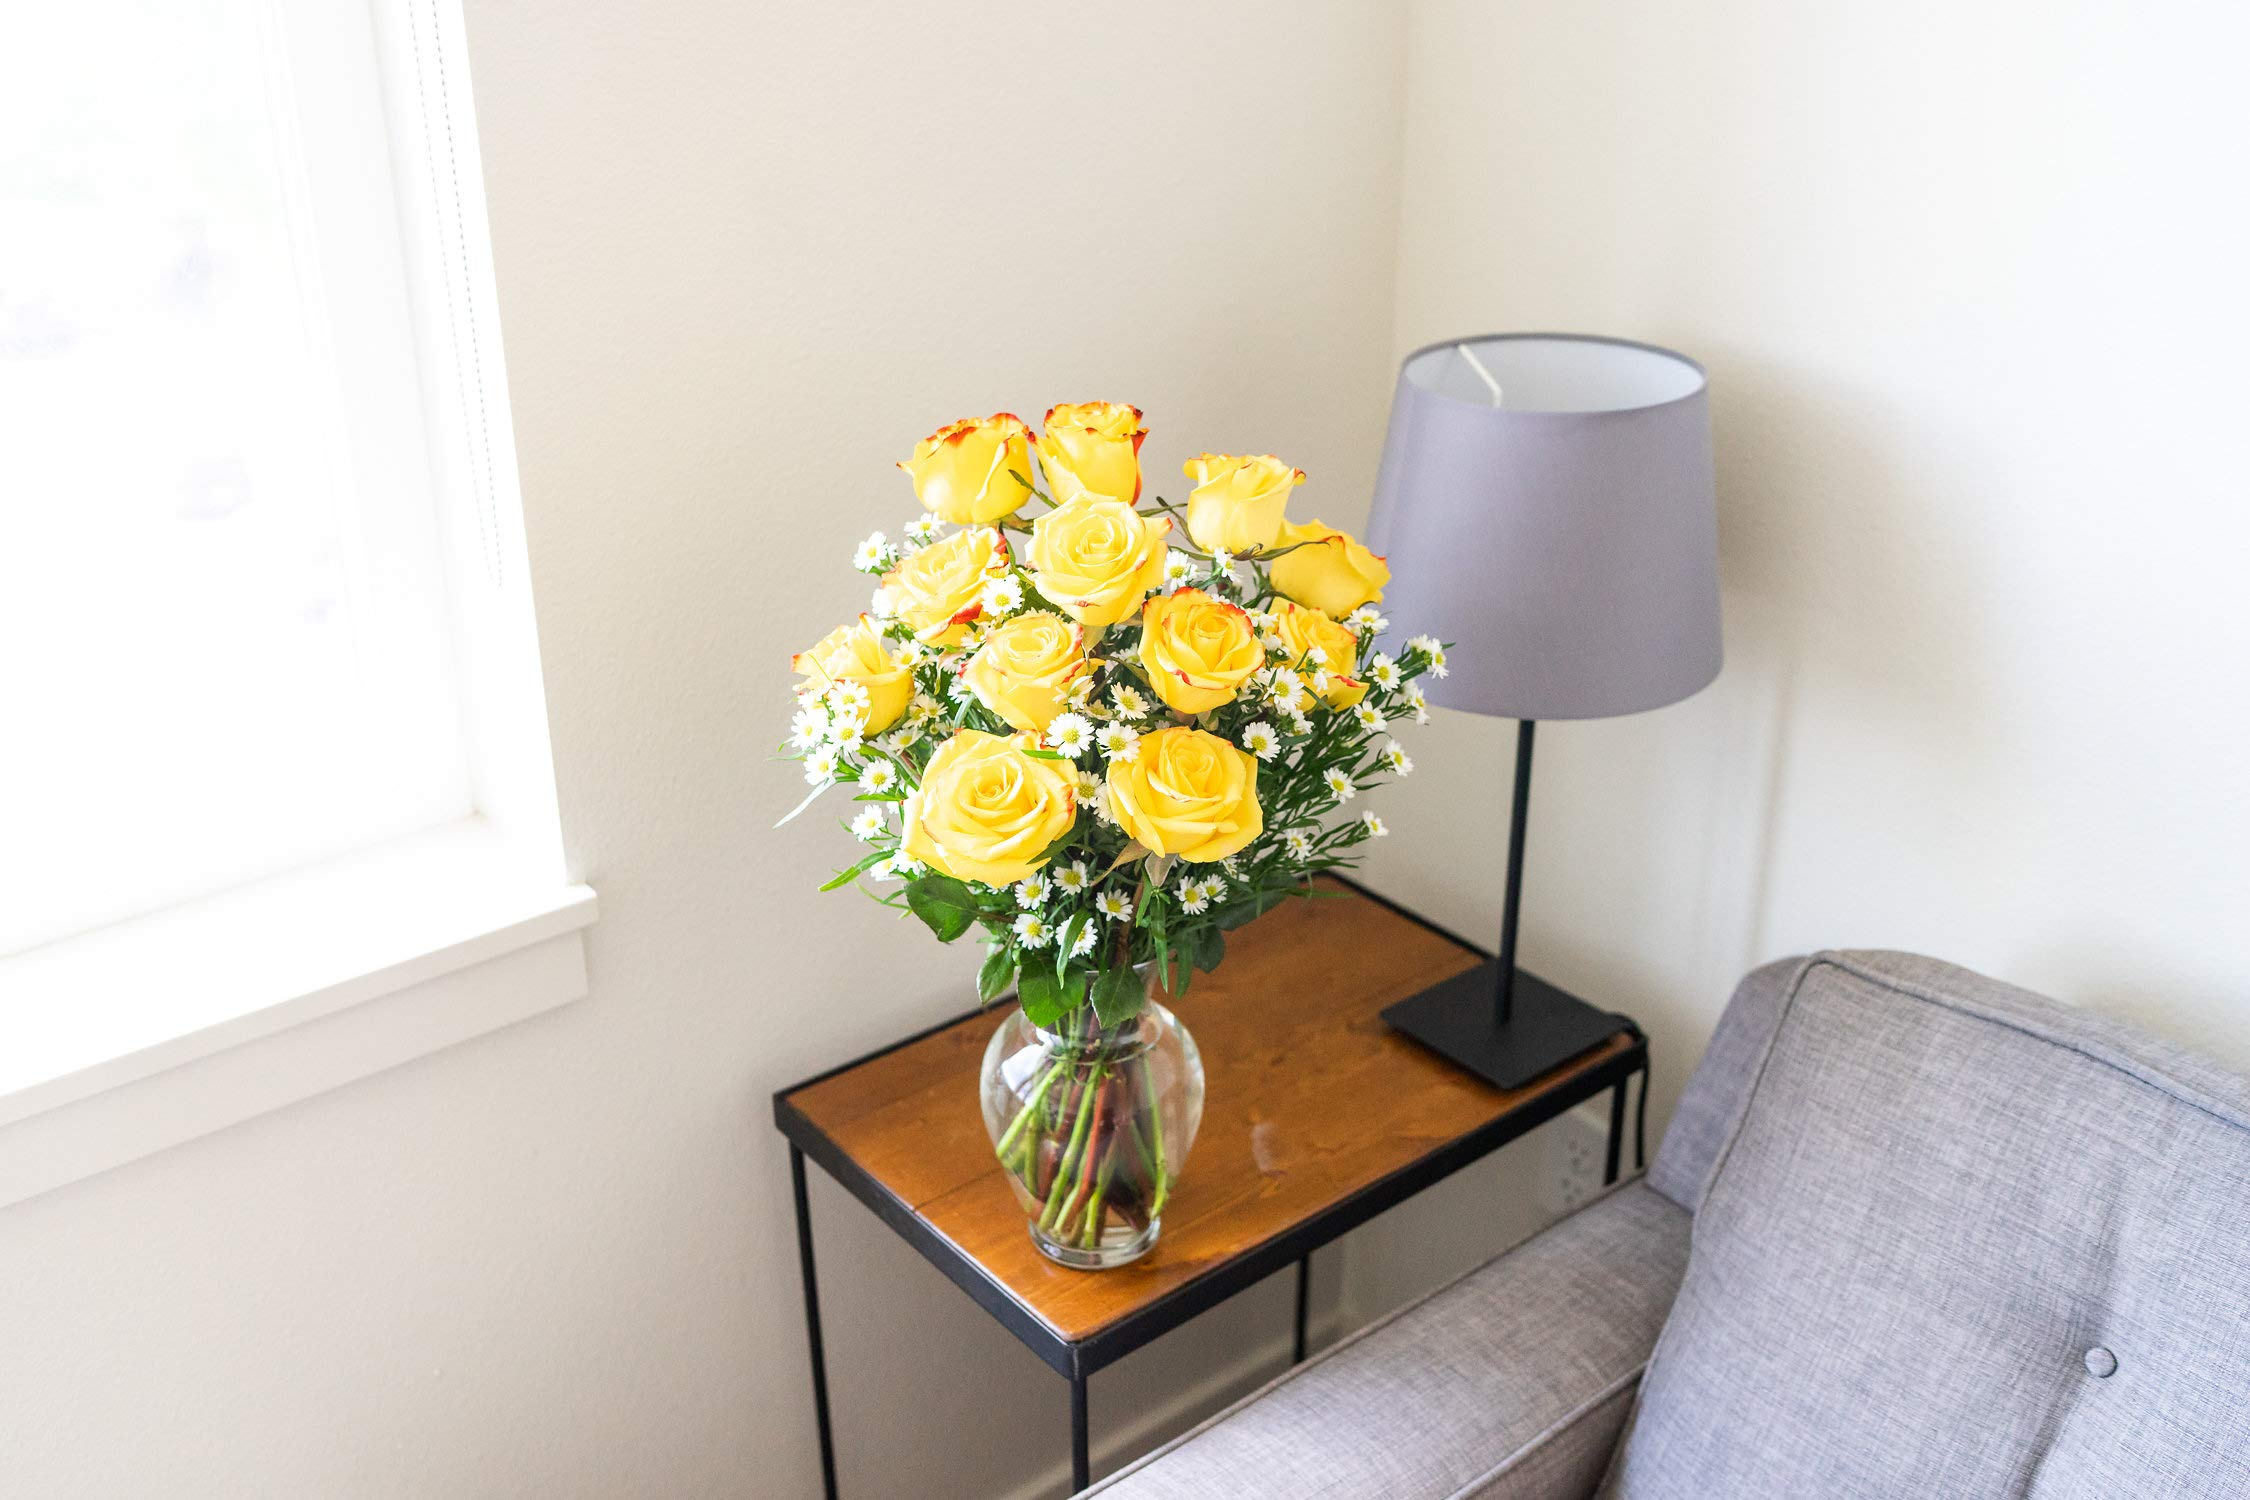 Flowers - One Dozen Festive Roses (Free Vase Included) by From You Flowers (Image #4)